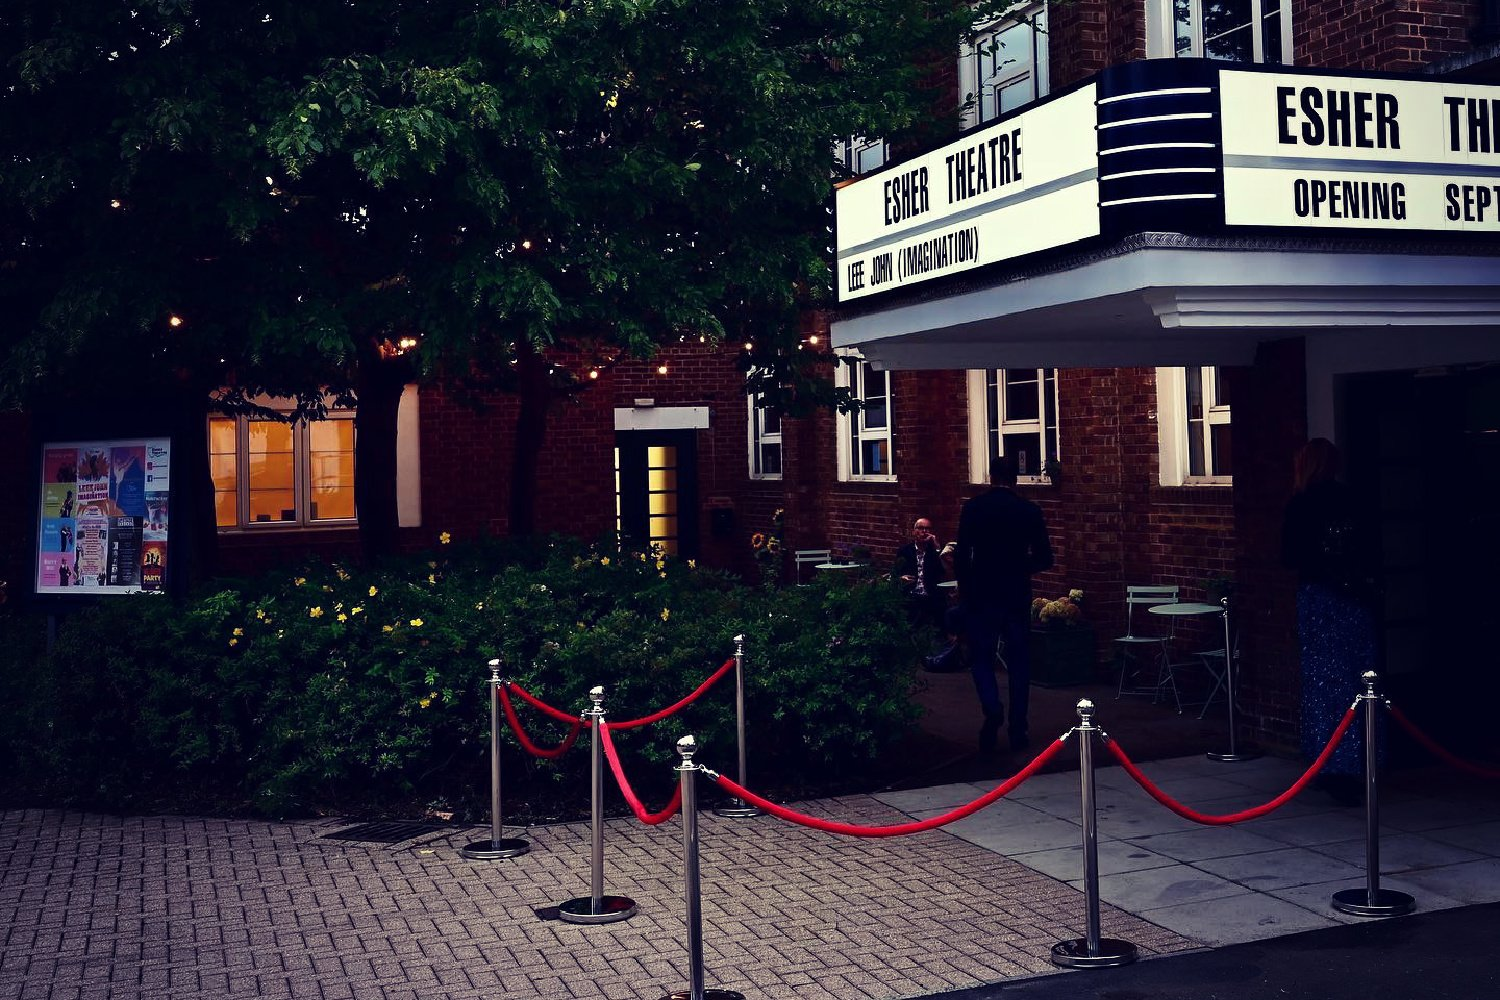 THE ESHER THEATRE, WHAT'S IT ALL ABOUT…